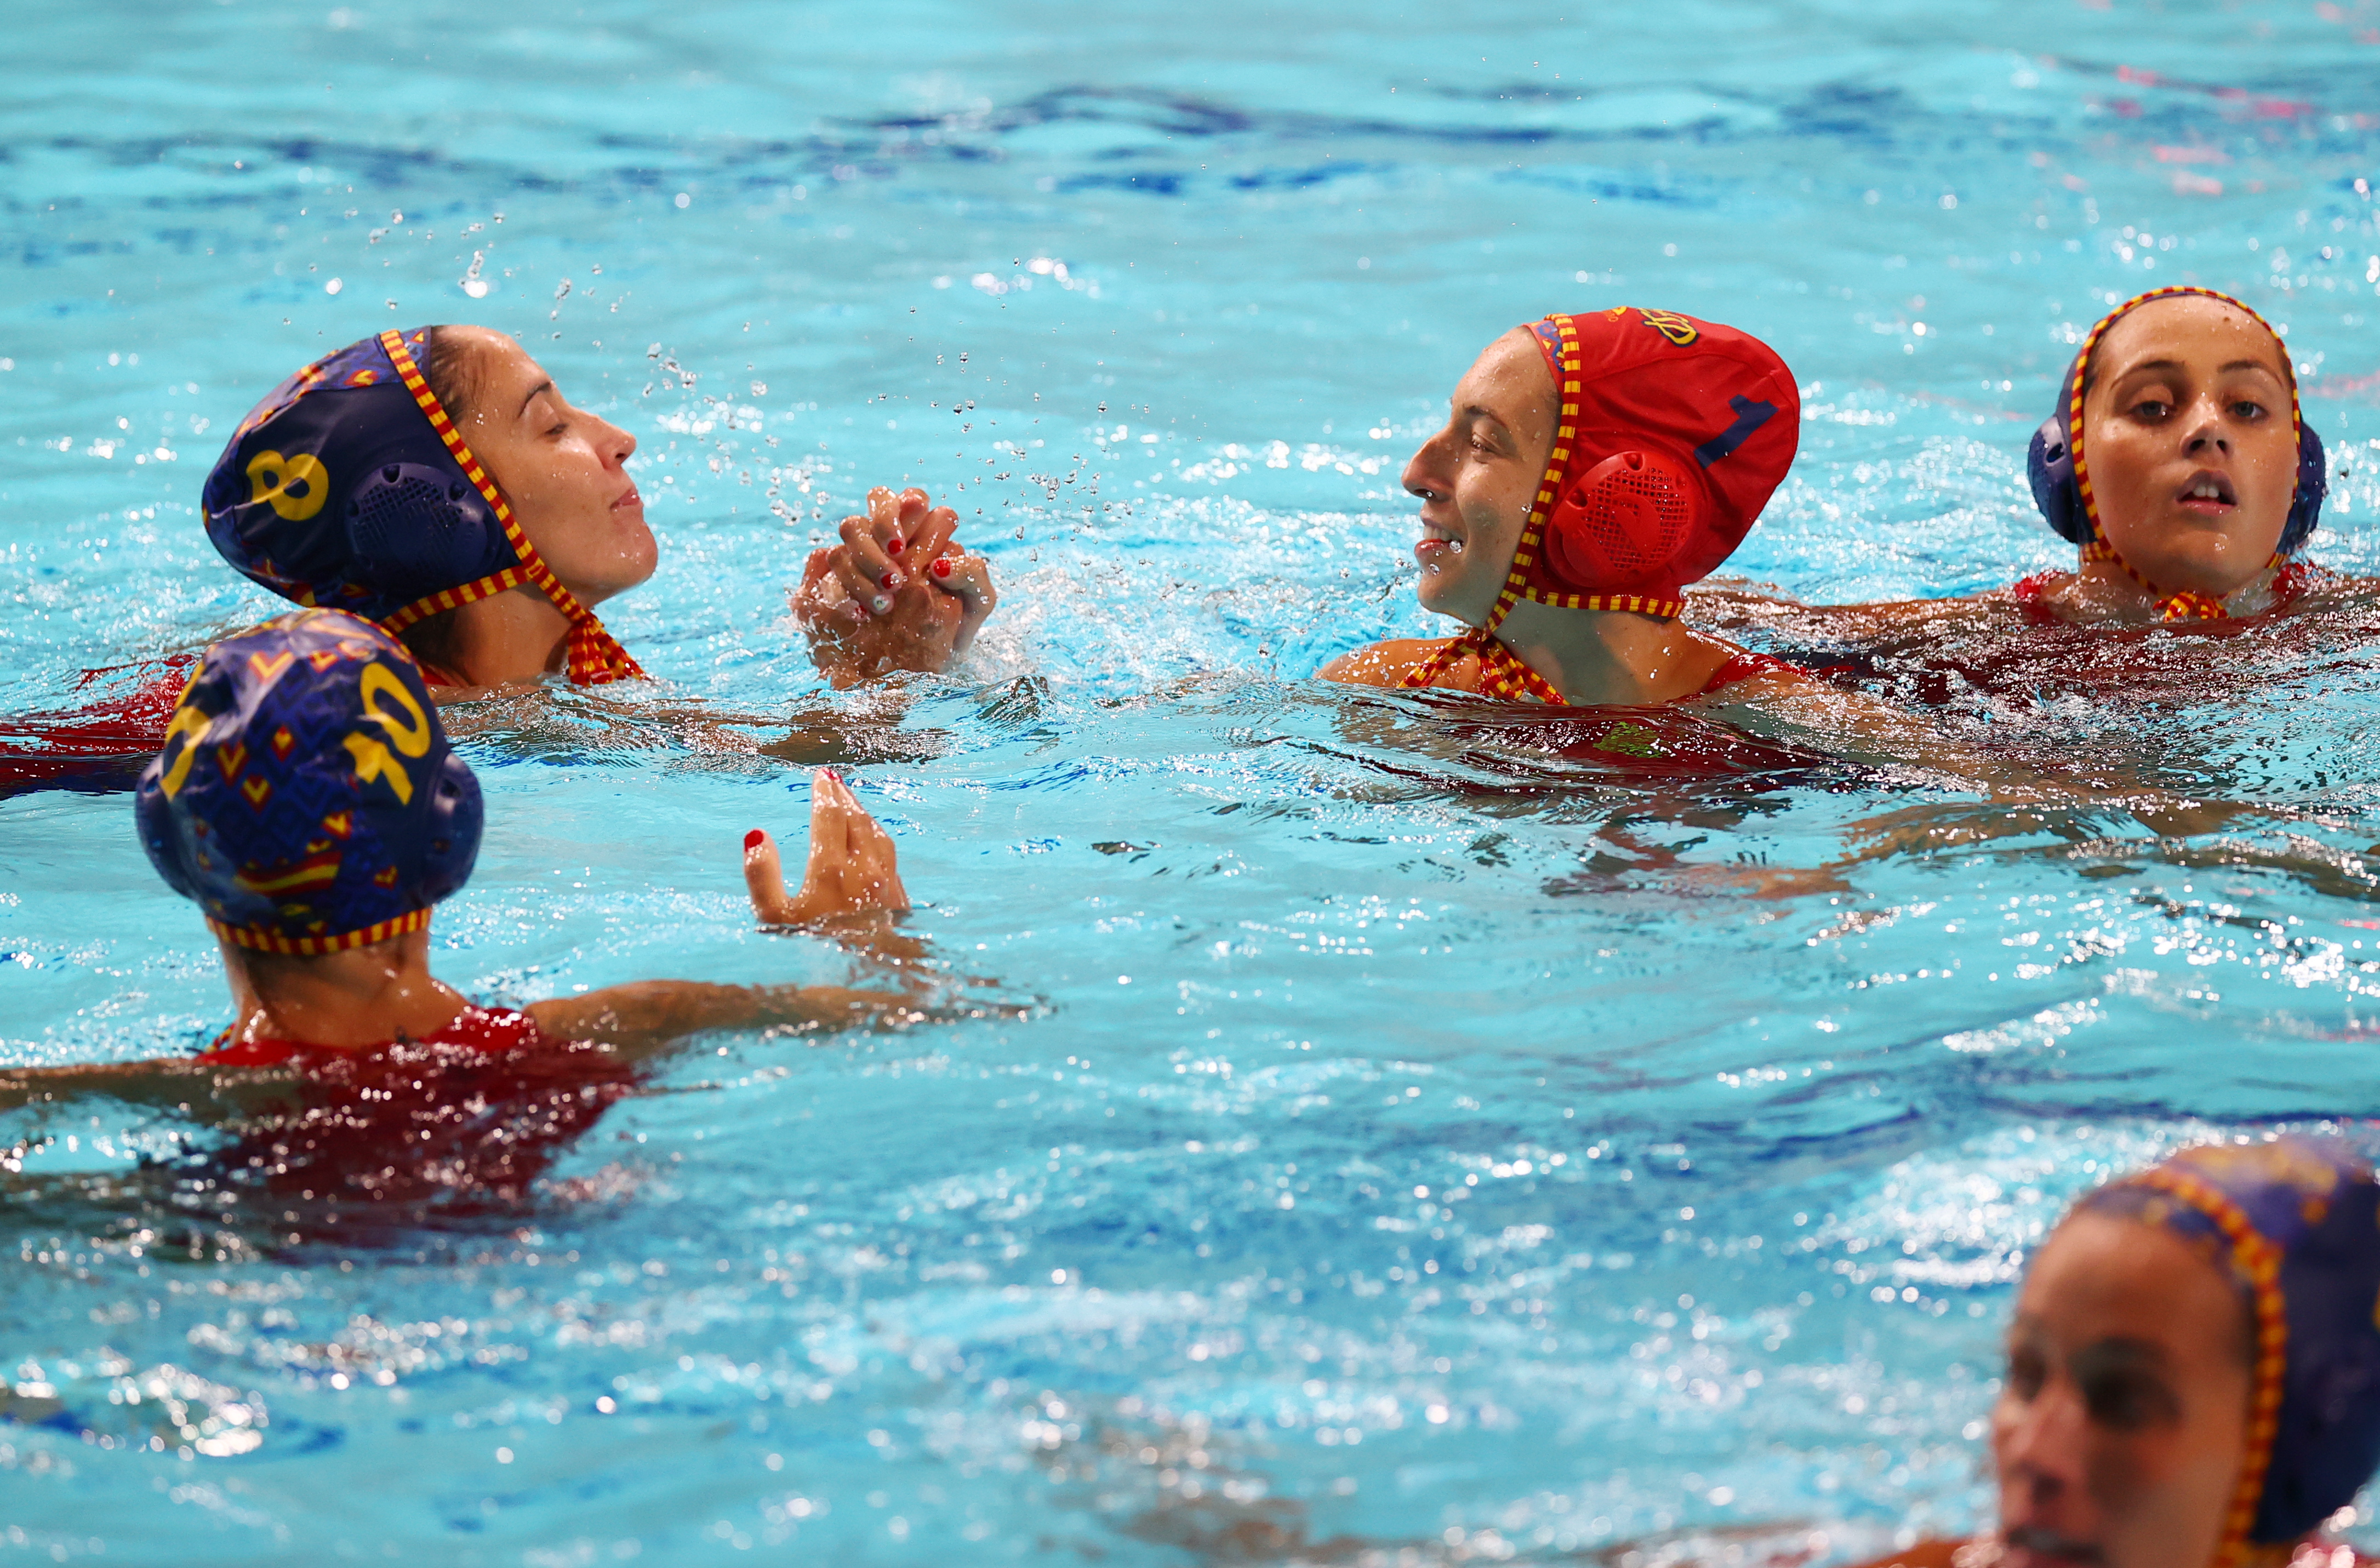 Tokyo 2020 Olympics - Water Polo - Women - Group A - South Africa v Spain - Tatsumi Water Polo Centre, Tokyo, Japan – July 24, 2021. Laura Ester Ramos of Spain greets Pili Pena of Spain. REUTERS/Kacper Pempel